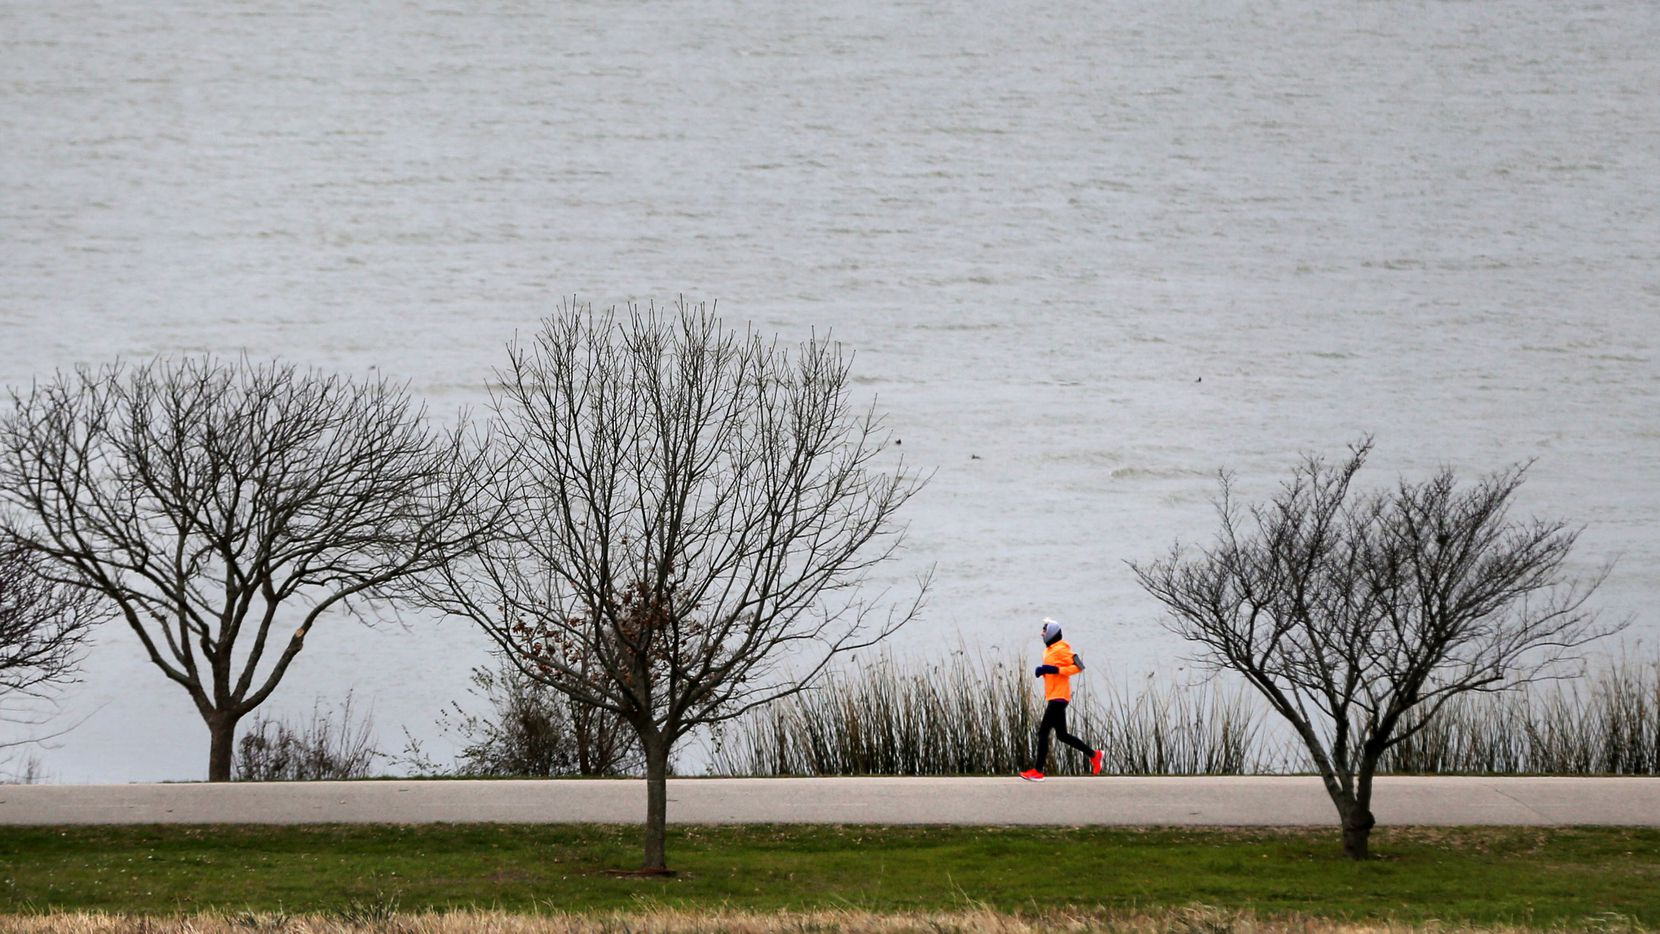 Susan Tiner ran in 24-degree weather at White Rock Lake in Dallas on Monday morning.